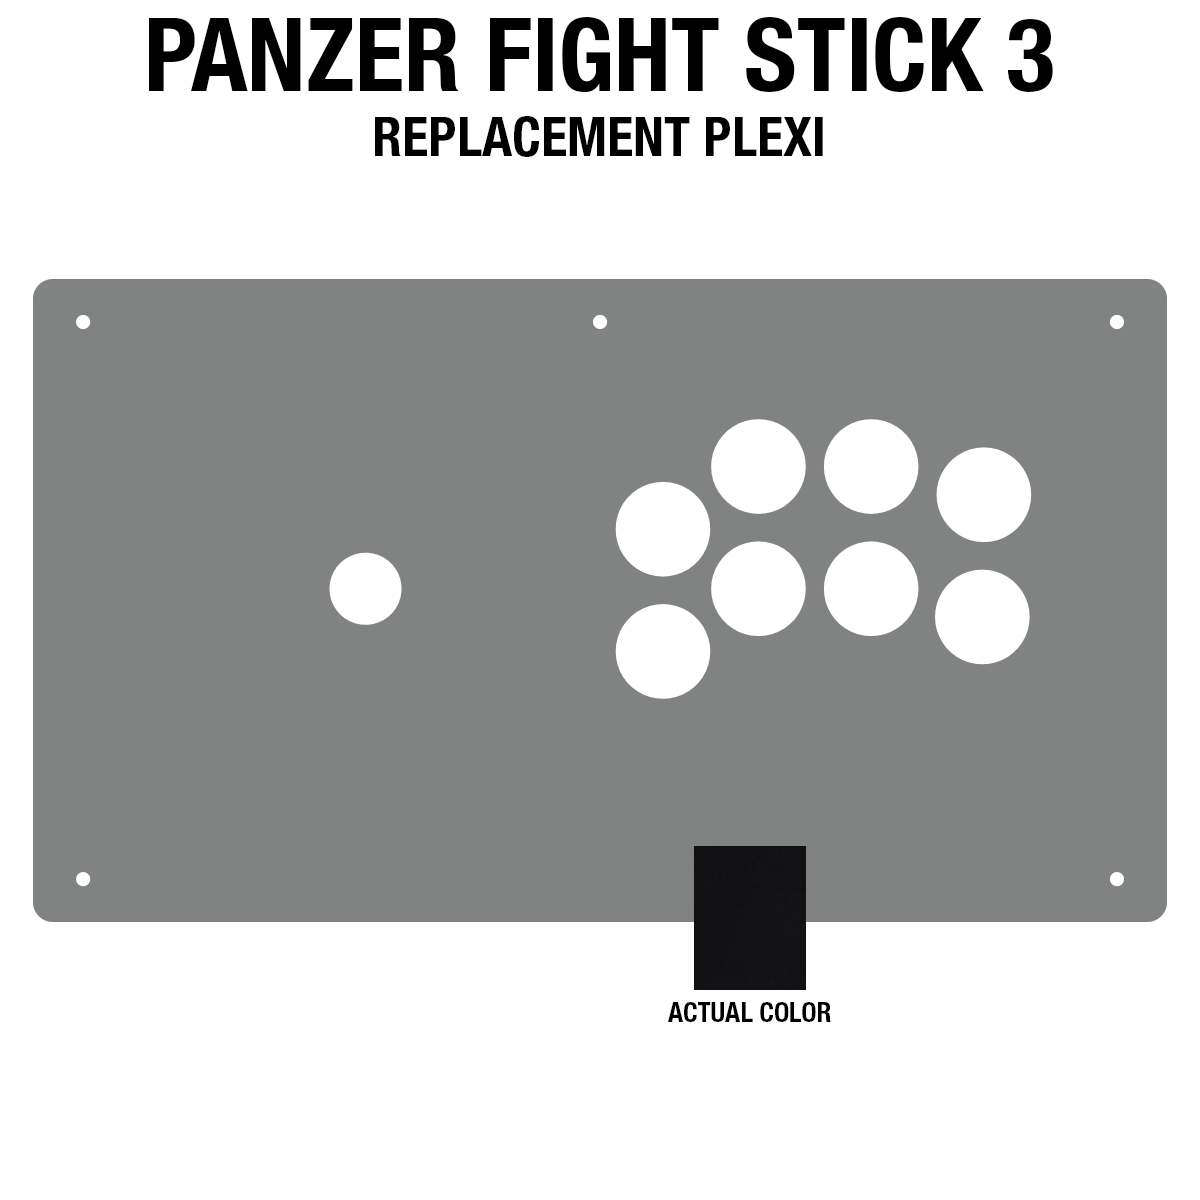 Panzer Fight Stick 3 Plexi - Black Gloss (8 Buttons)